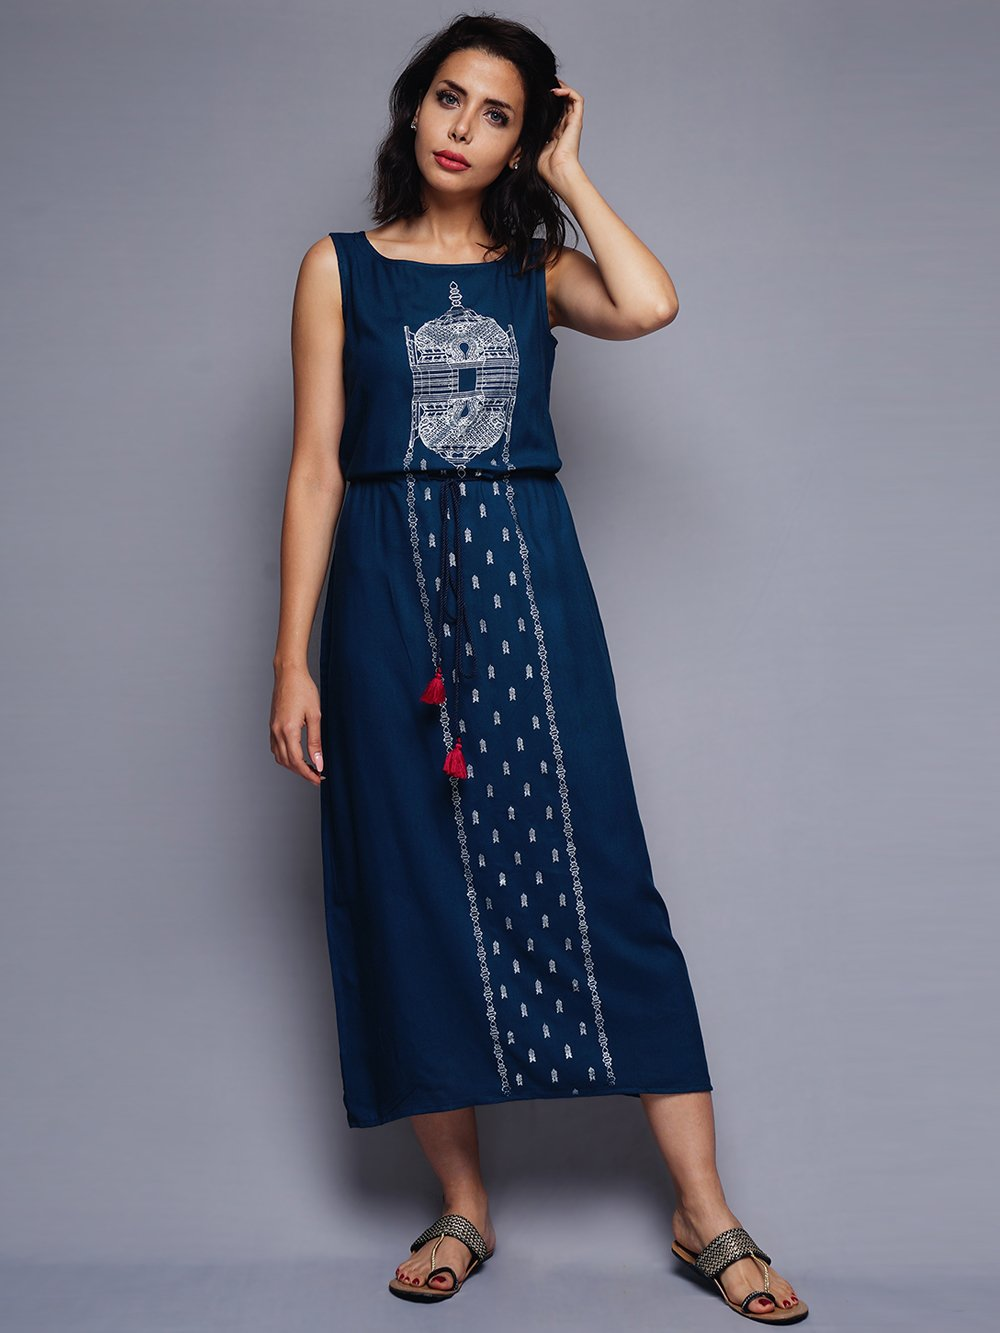 Teal Blueprinted Dress With Waist Tie-up | Untung